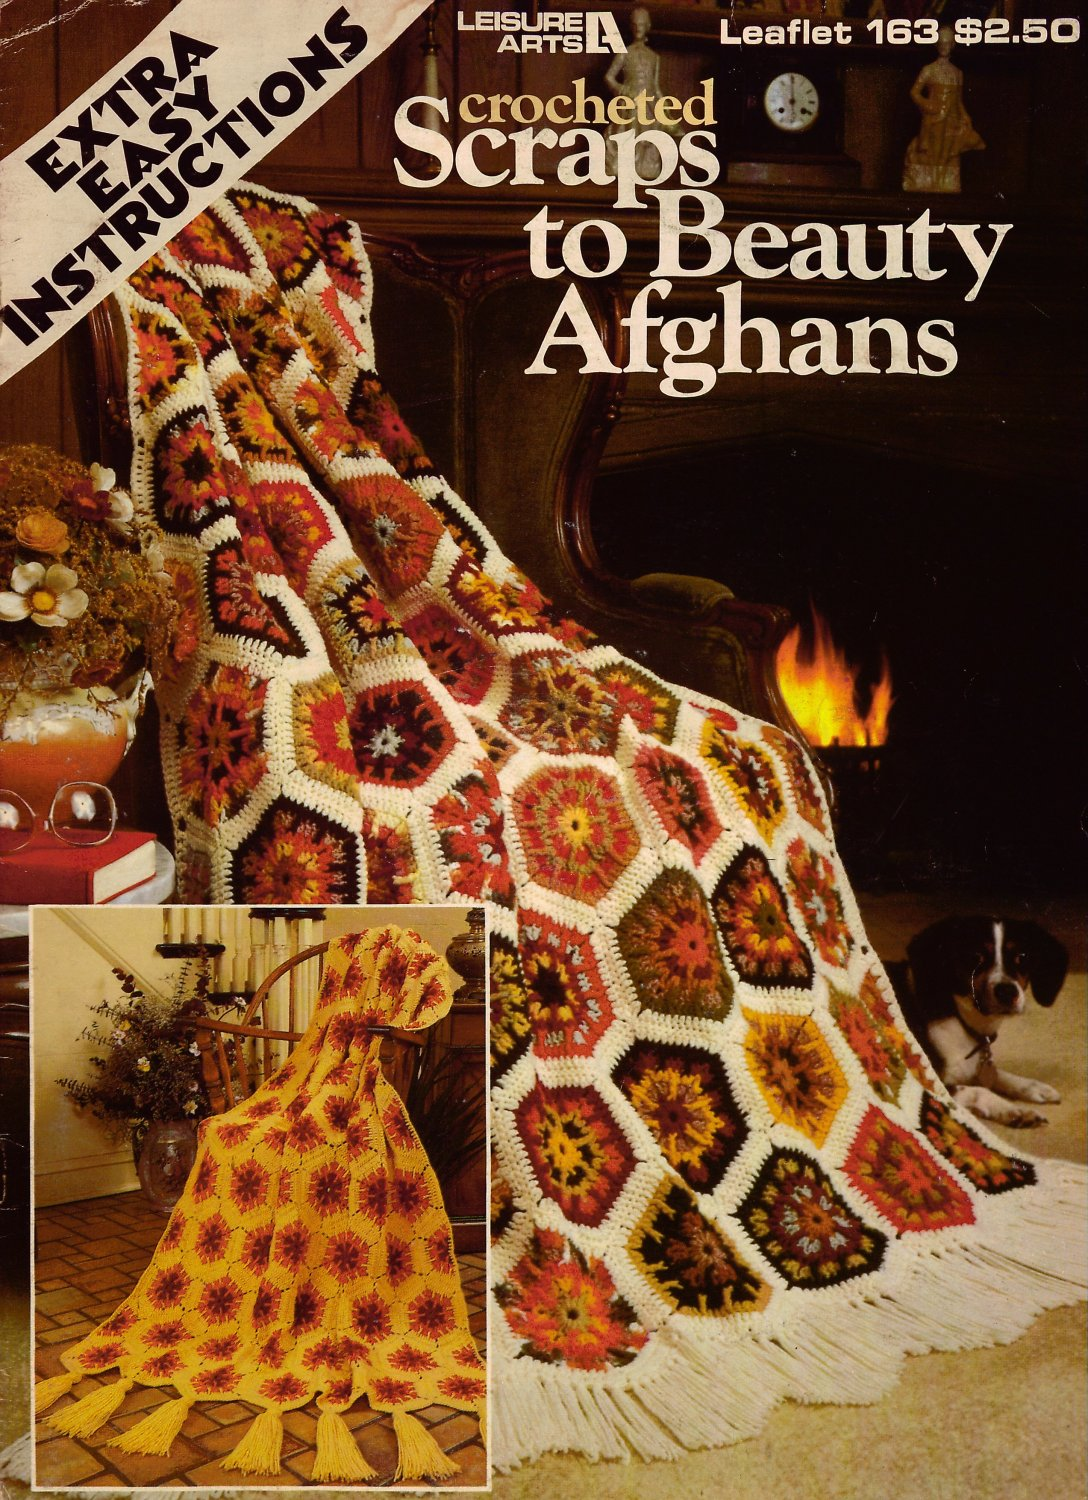 Leisure Arts 163 Crocheted Scraps to Beauty Easy Afghans Crochet Patterns 1980